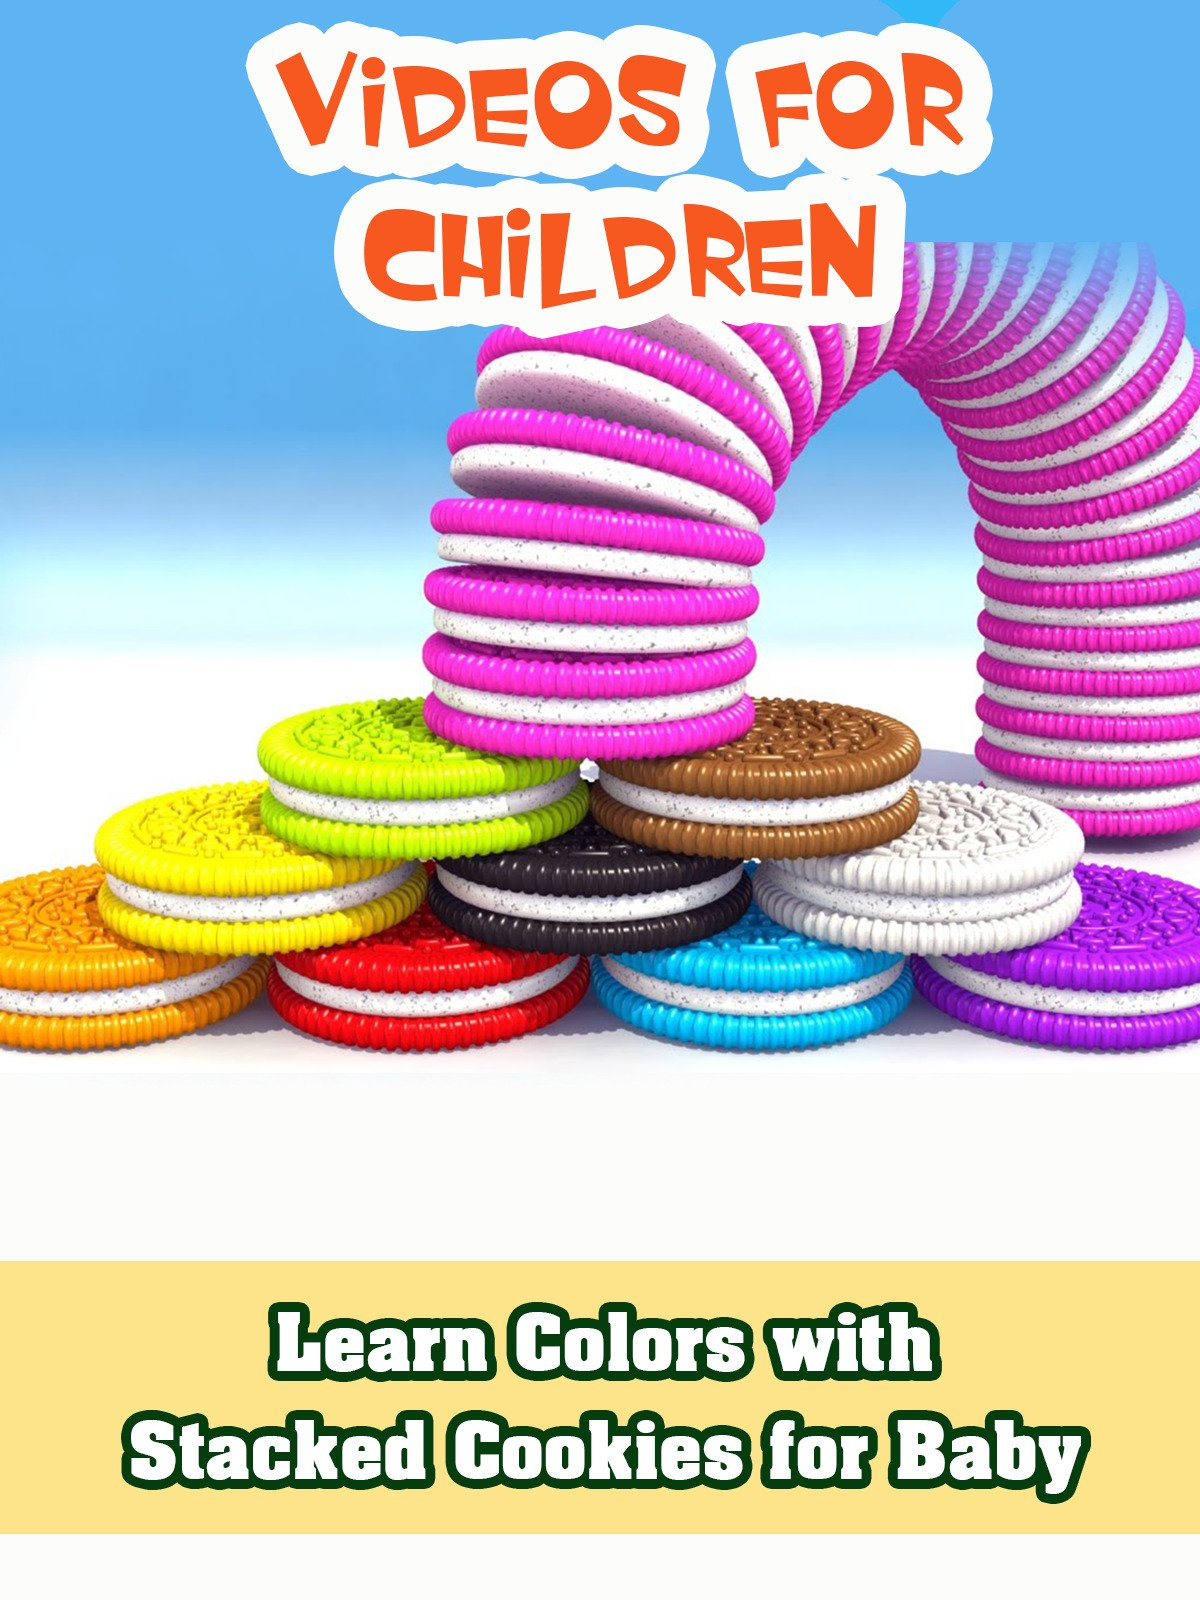 Learn Colors with Stacked Cookies for Baby